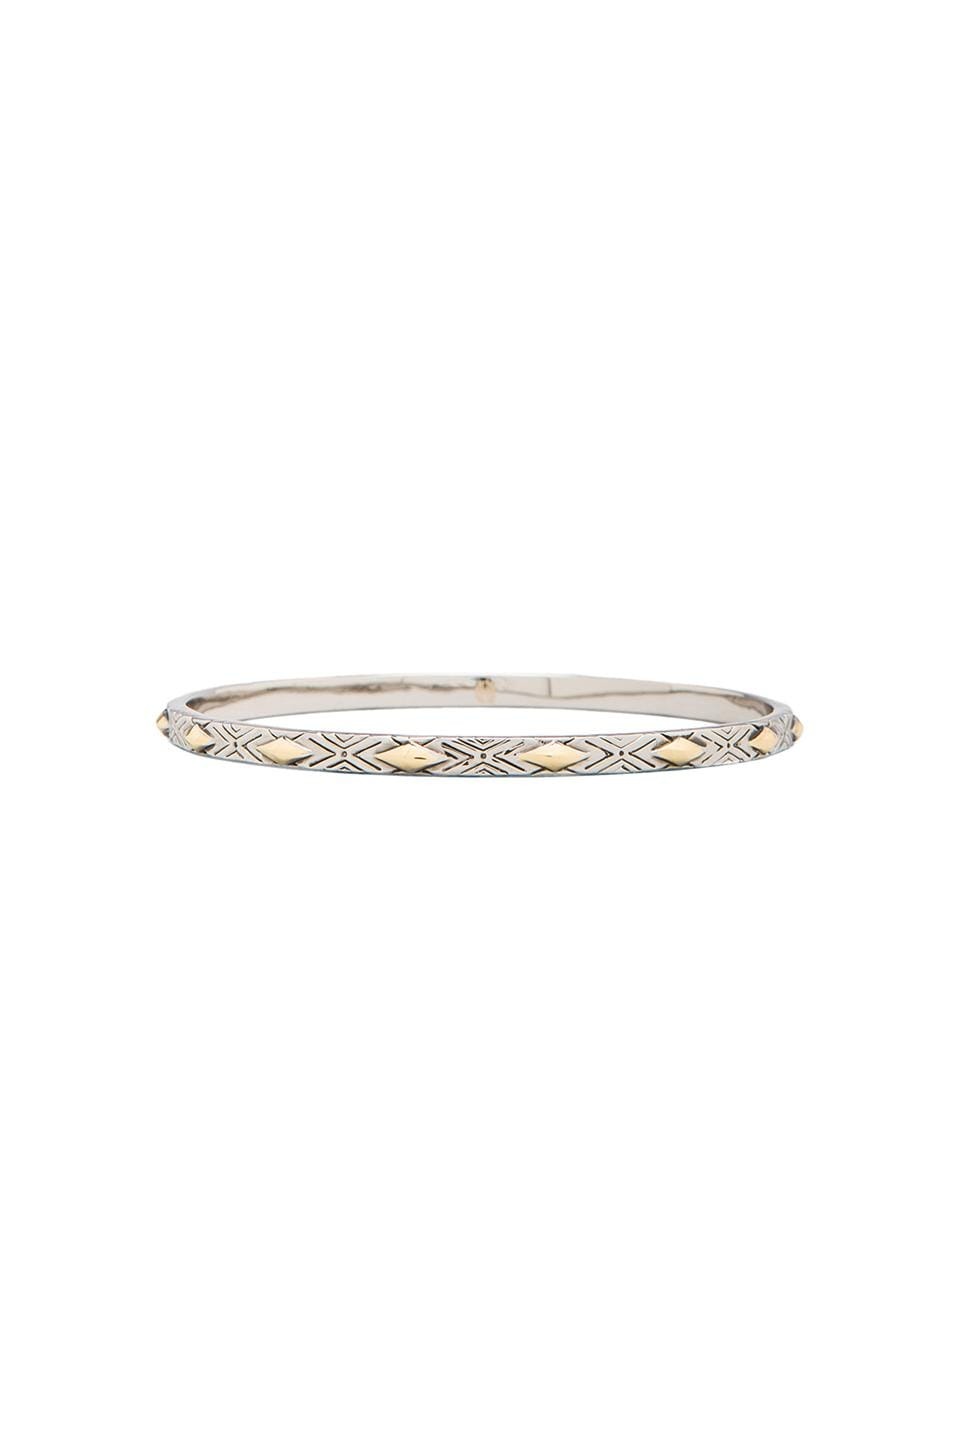 House of Harlow 1960 House of Harlow Marquis Stack Bangles in Silver